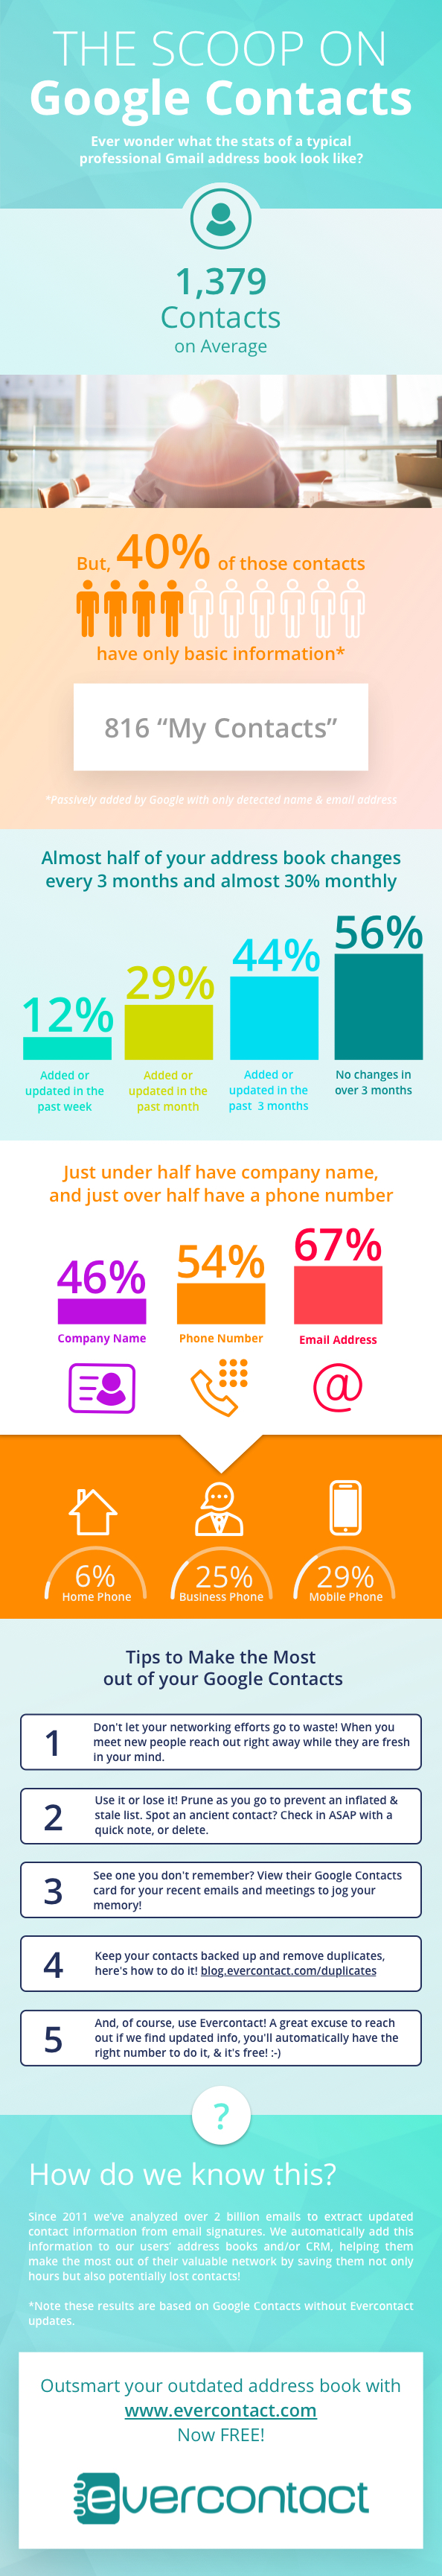 Evercontact Infographic The State of Google Contacts